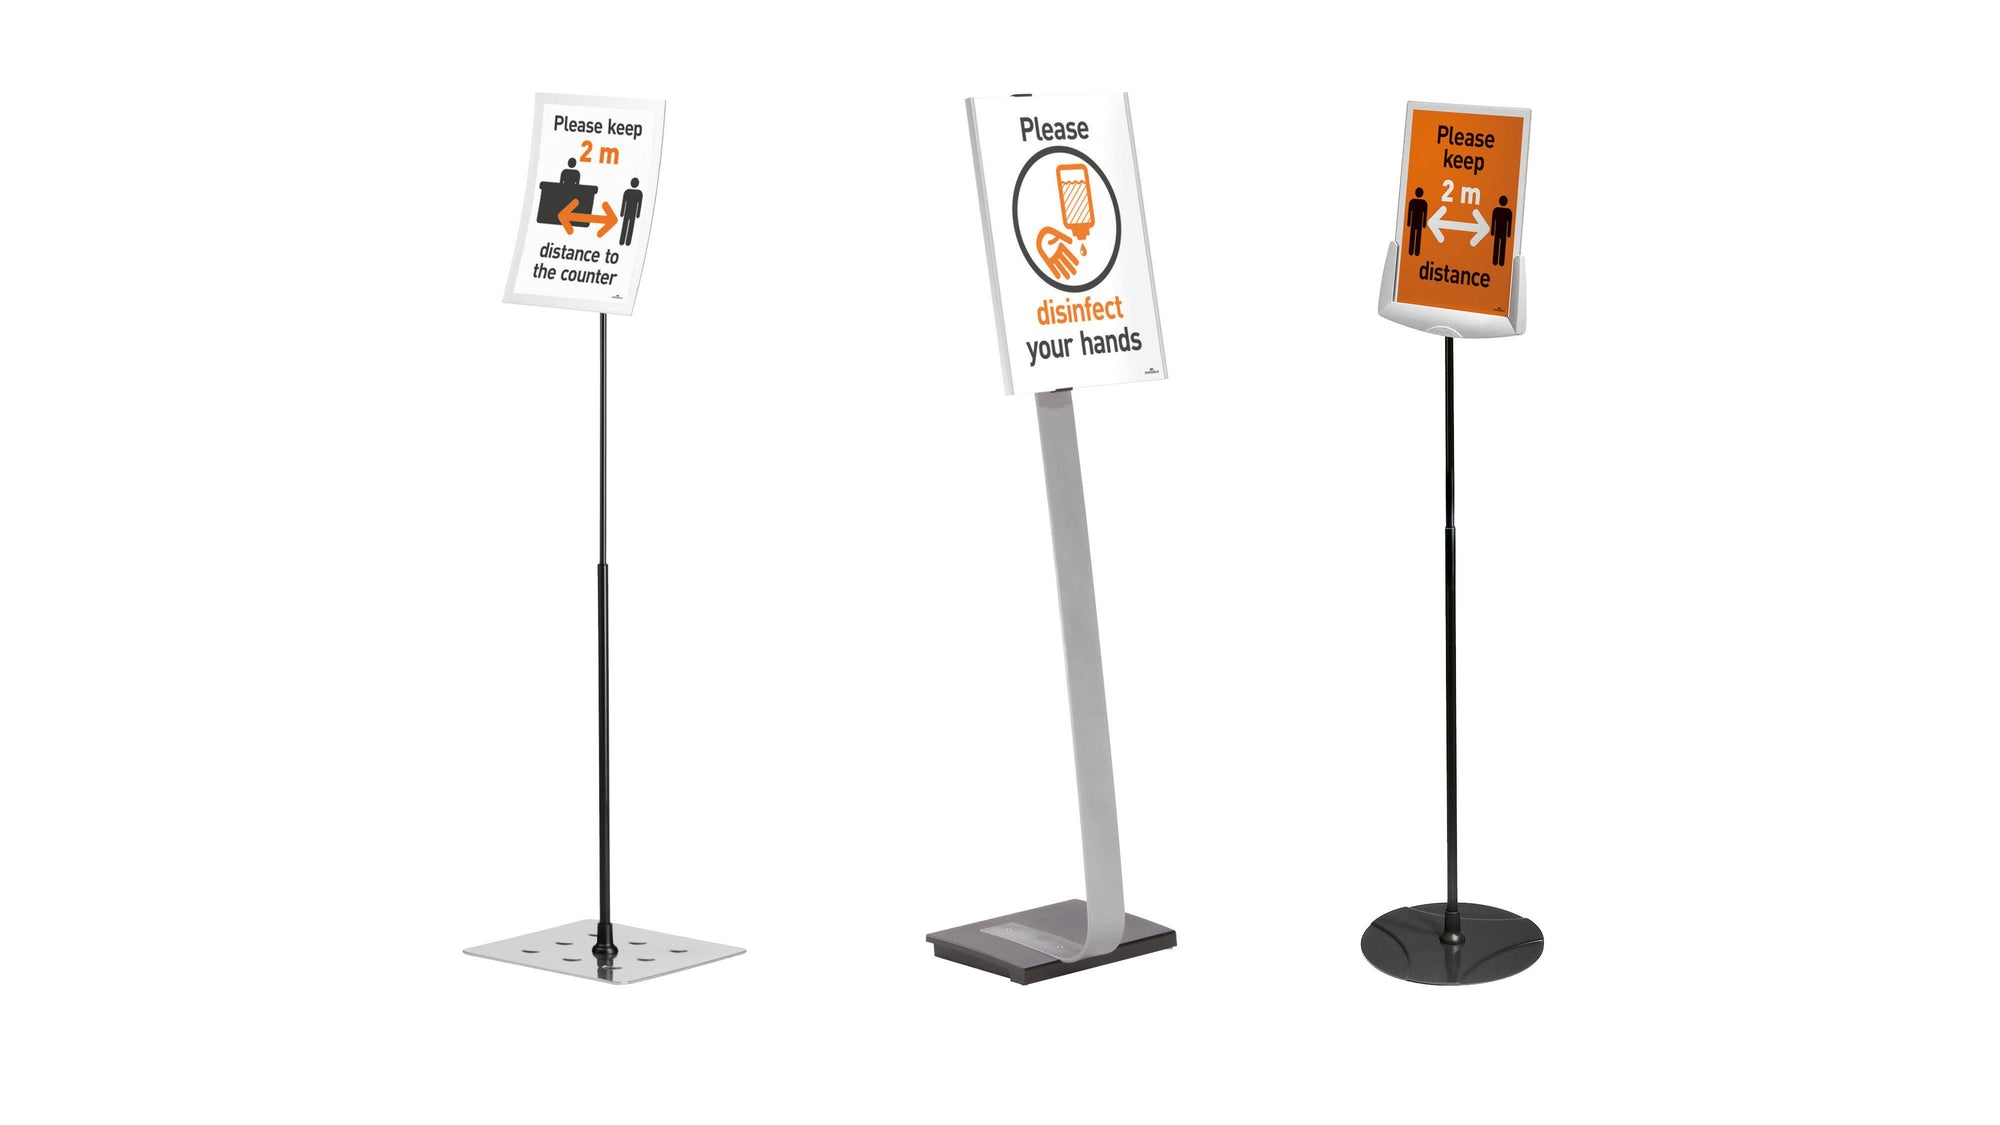 FloorStanding Display Stand easy-access A4 Magnetic info Holder Hygiene PPE social distancing Poster-Distinct Designs (London) Ltd